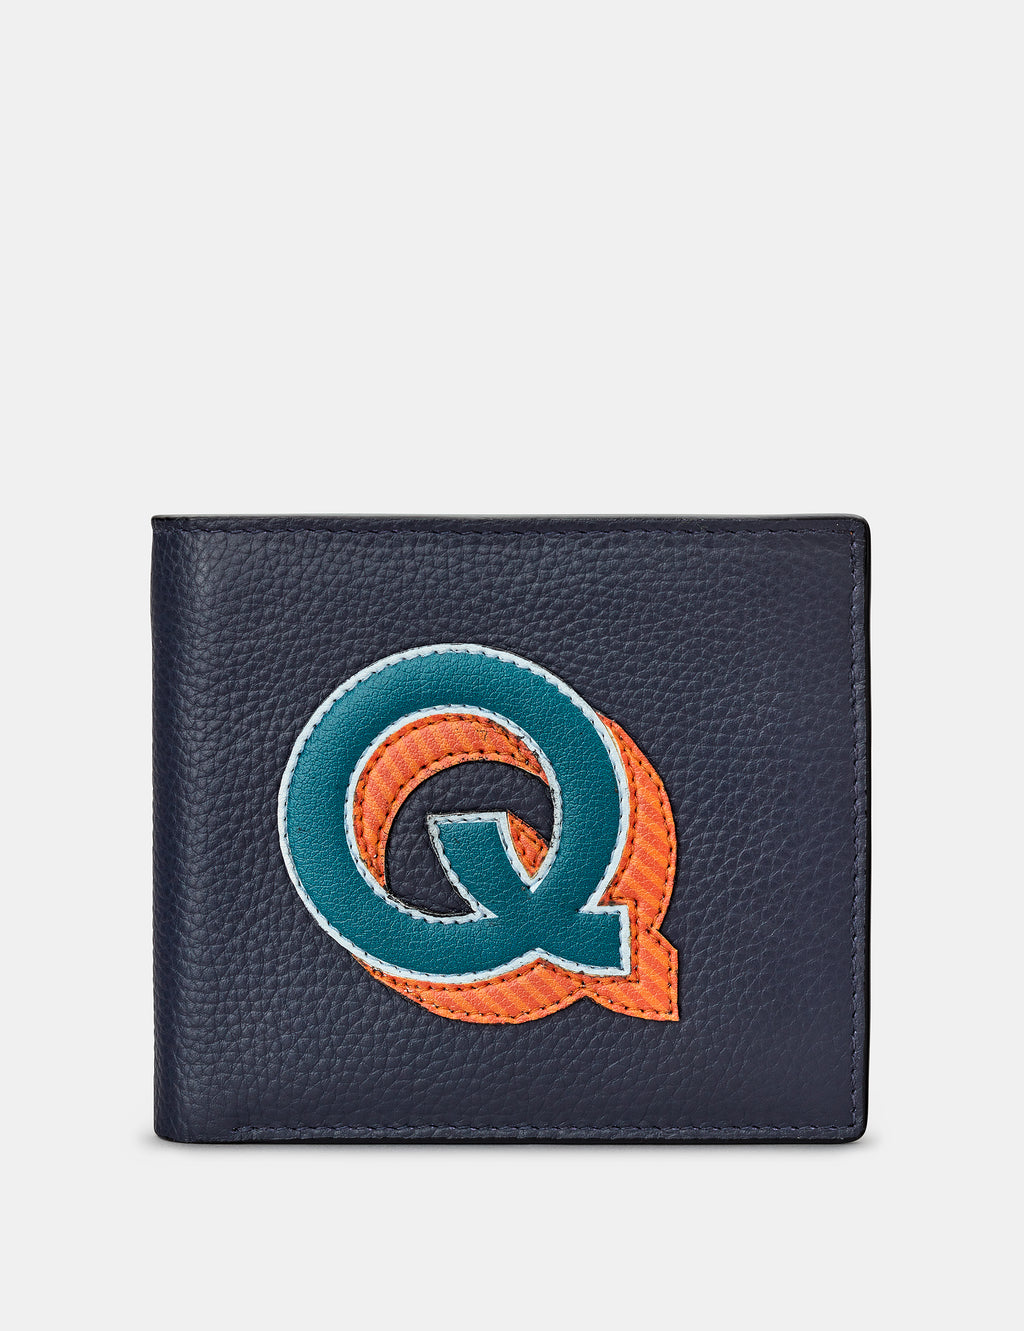 Q Initial Navy Leather Wallet